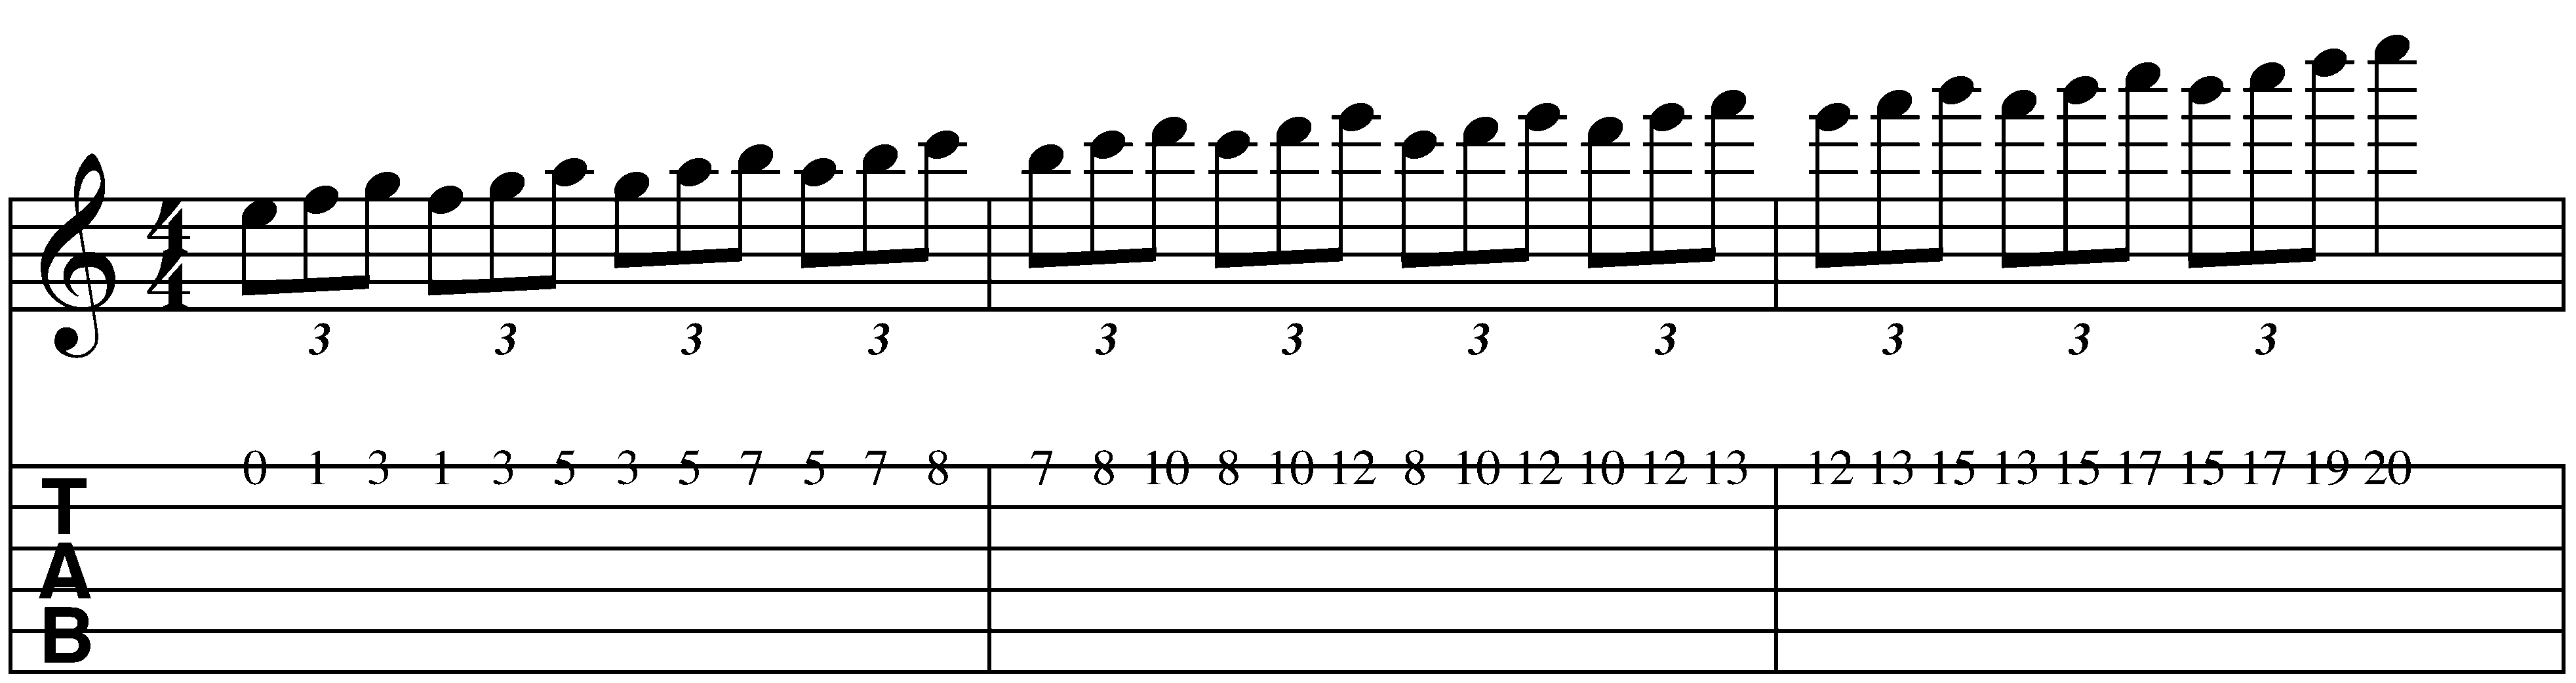 The Guitarchitects Guide To Modes Part 1 Seeing The Single String